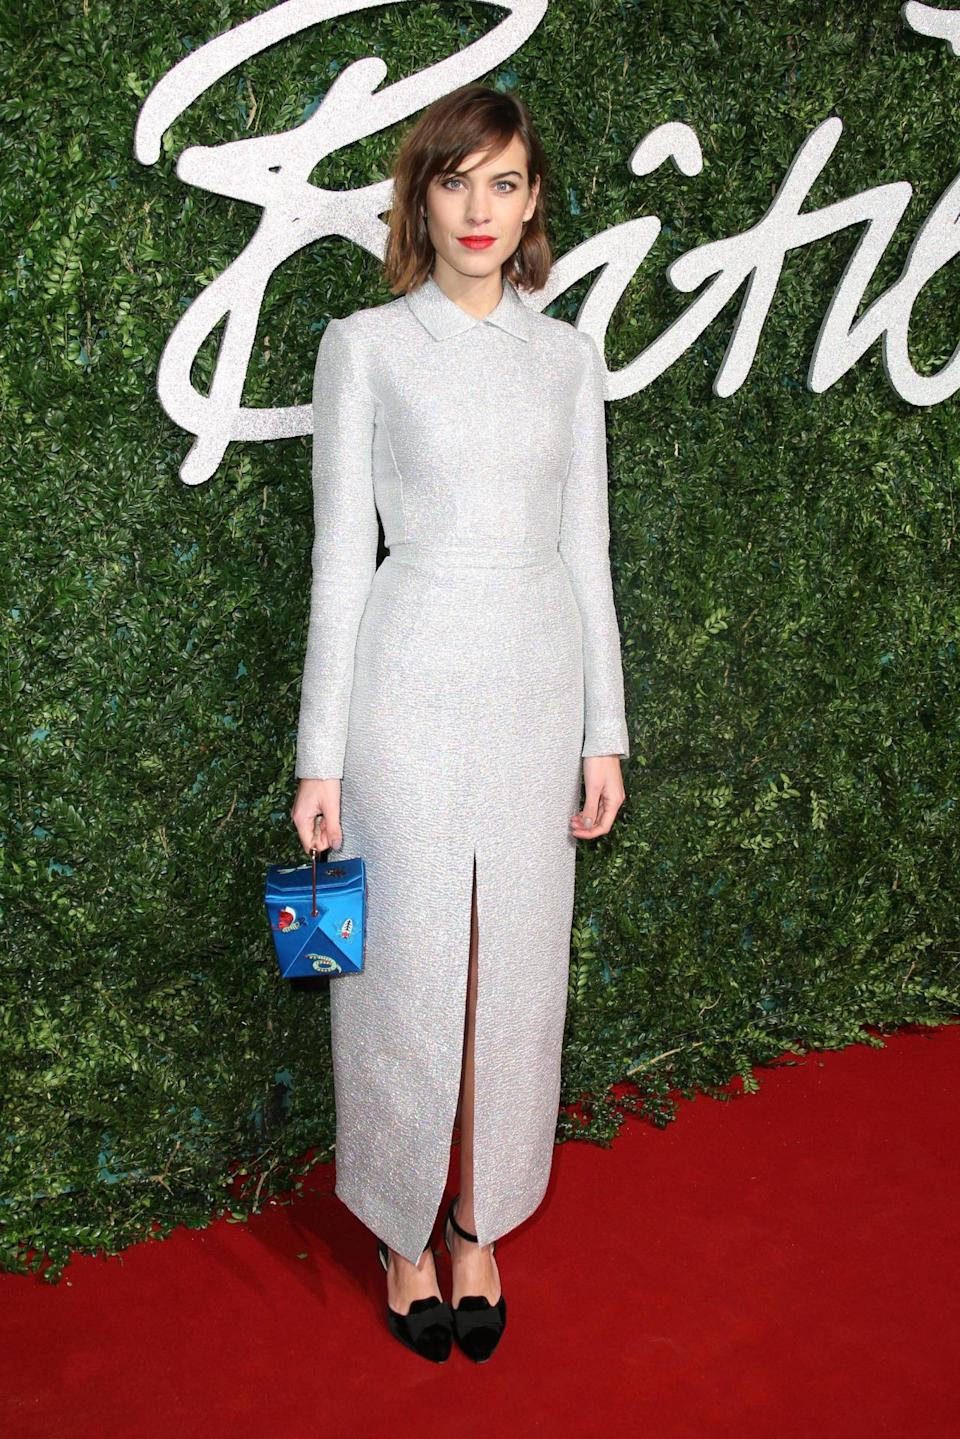 Alexa Chung was wearing Emilia Wickstead, a designer who frequently dresses fellow Brit, the Duchess of Cambridge.